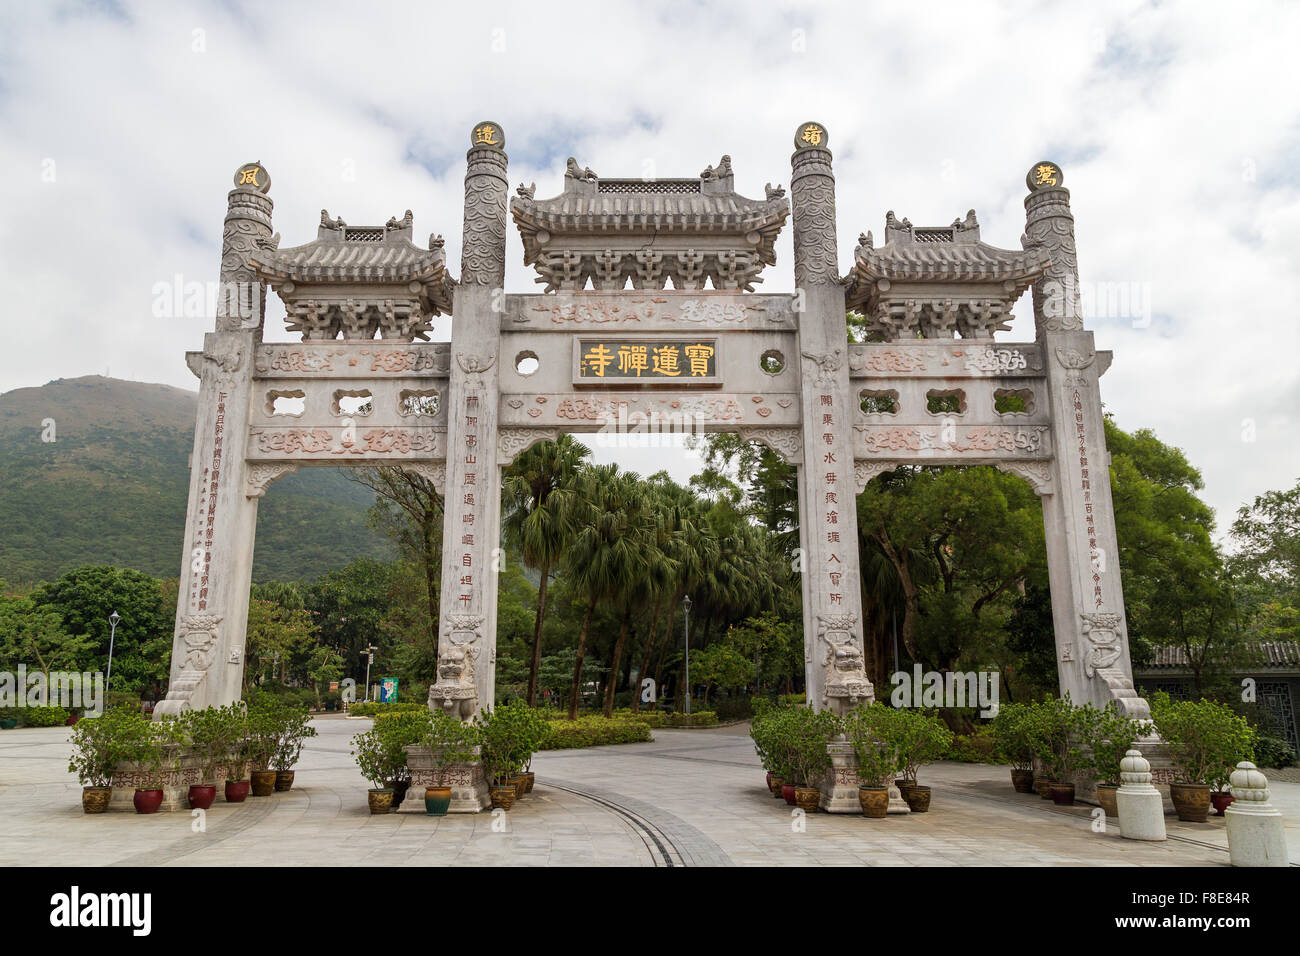 Mountain Gate at the Po Lin Monastery on Lantau Island in Hong Kong, China. Viewed from the front. - Stock Image